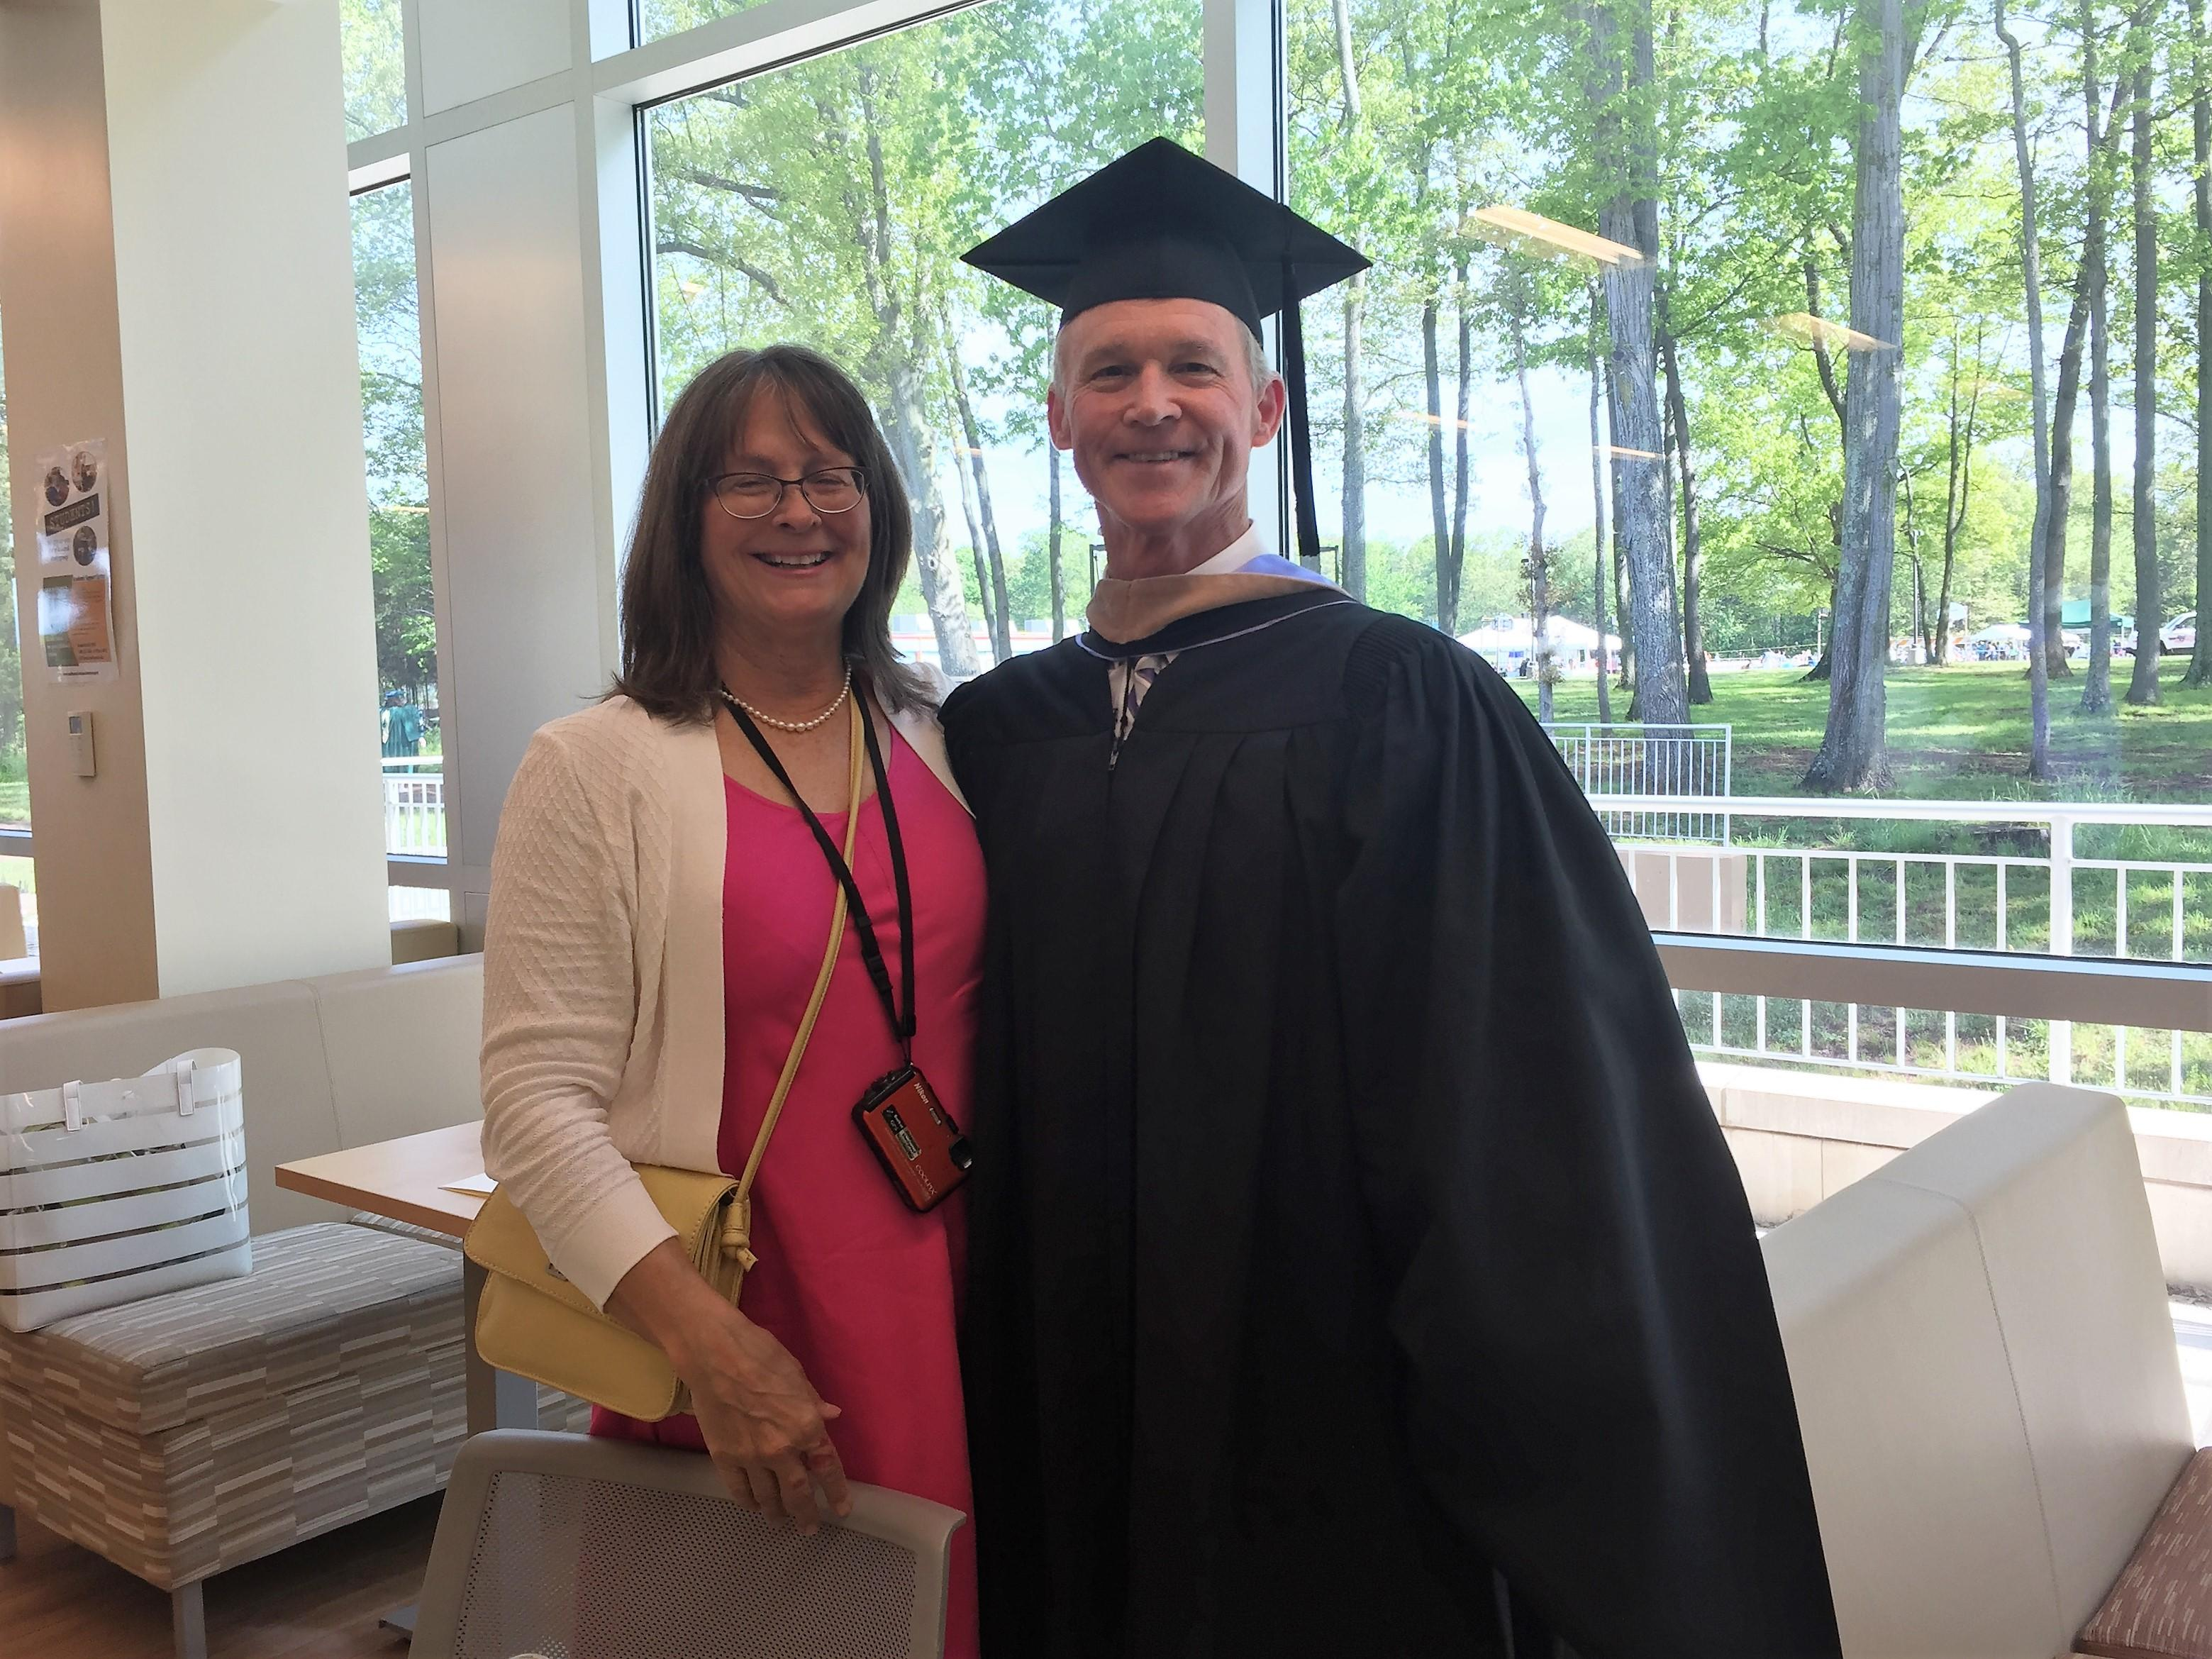 HPS Executive Director, Toby Loyd, honorary guest at RVCC commencement, with his wife.